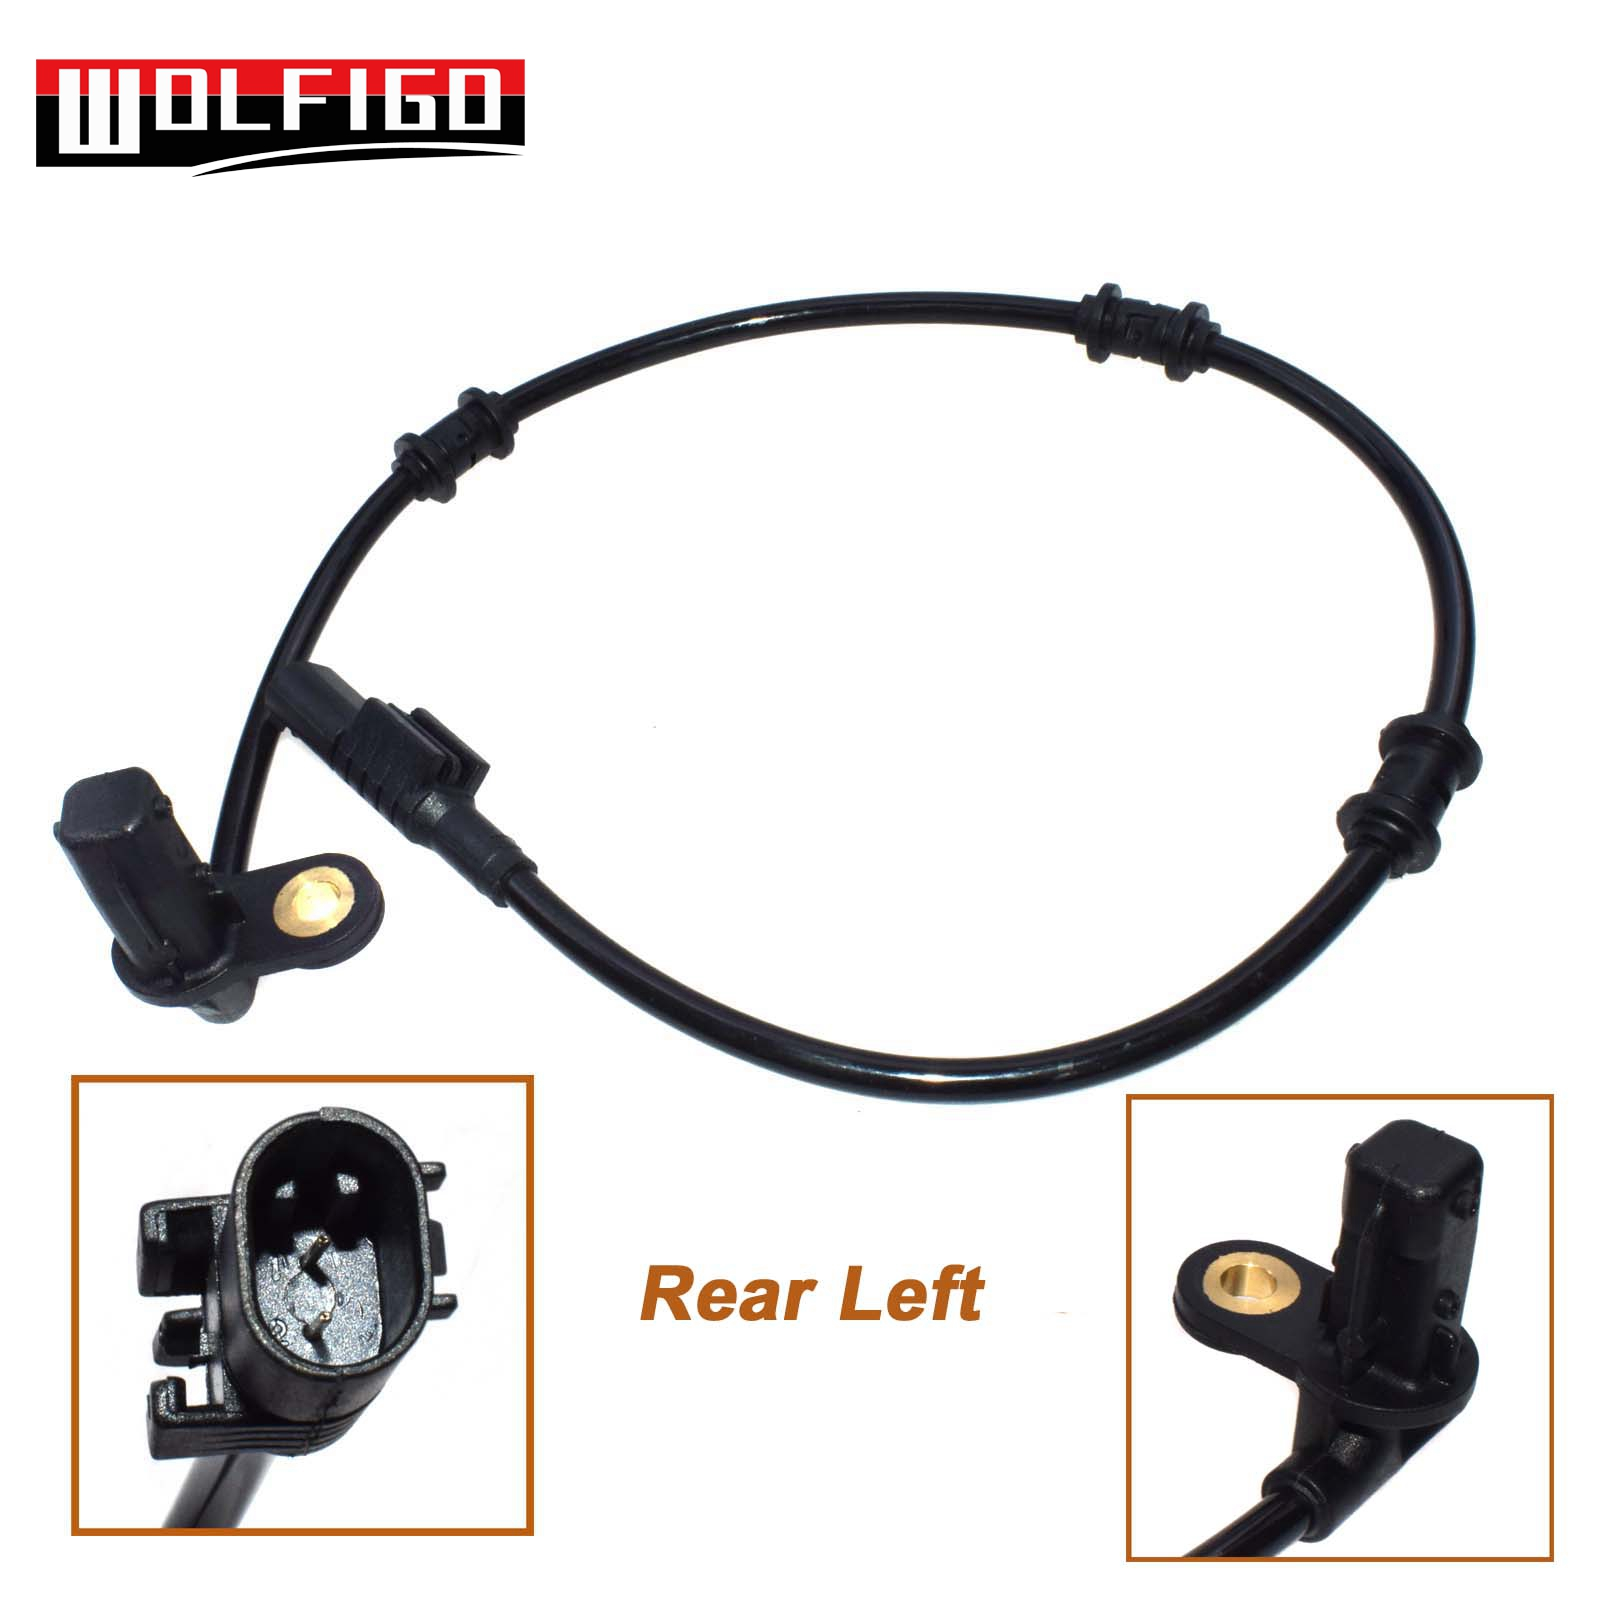 For Mercedes Benz ML500 ABS Wheel Speed Sensor Rear Left /& Rear Right 2002-2005